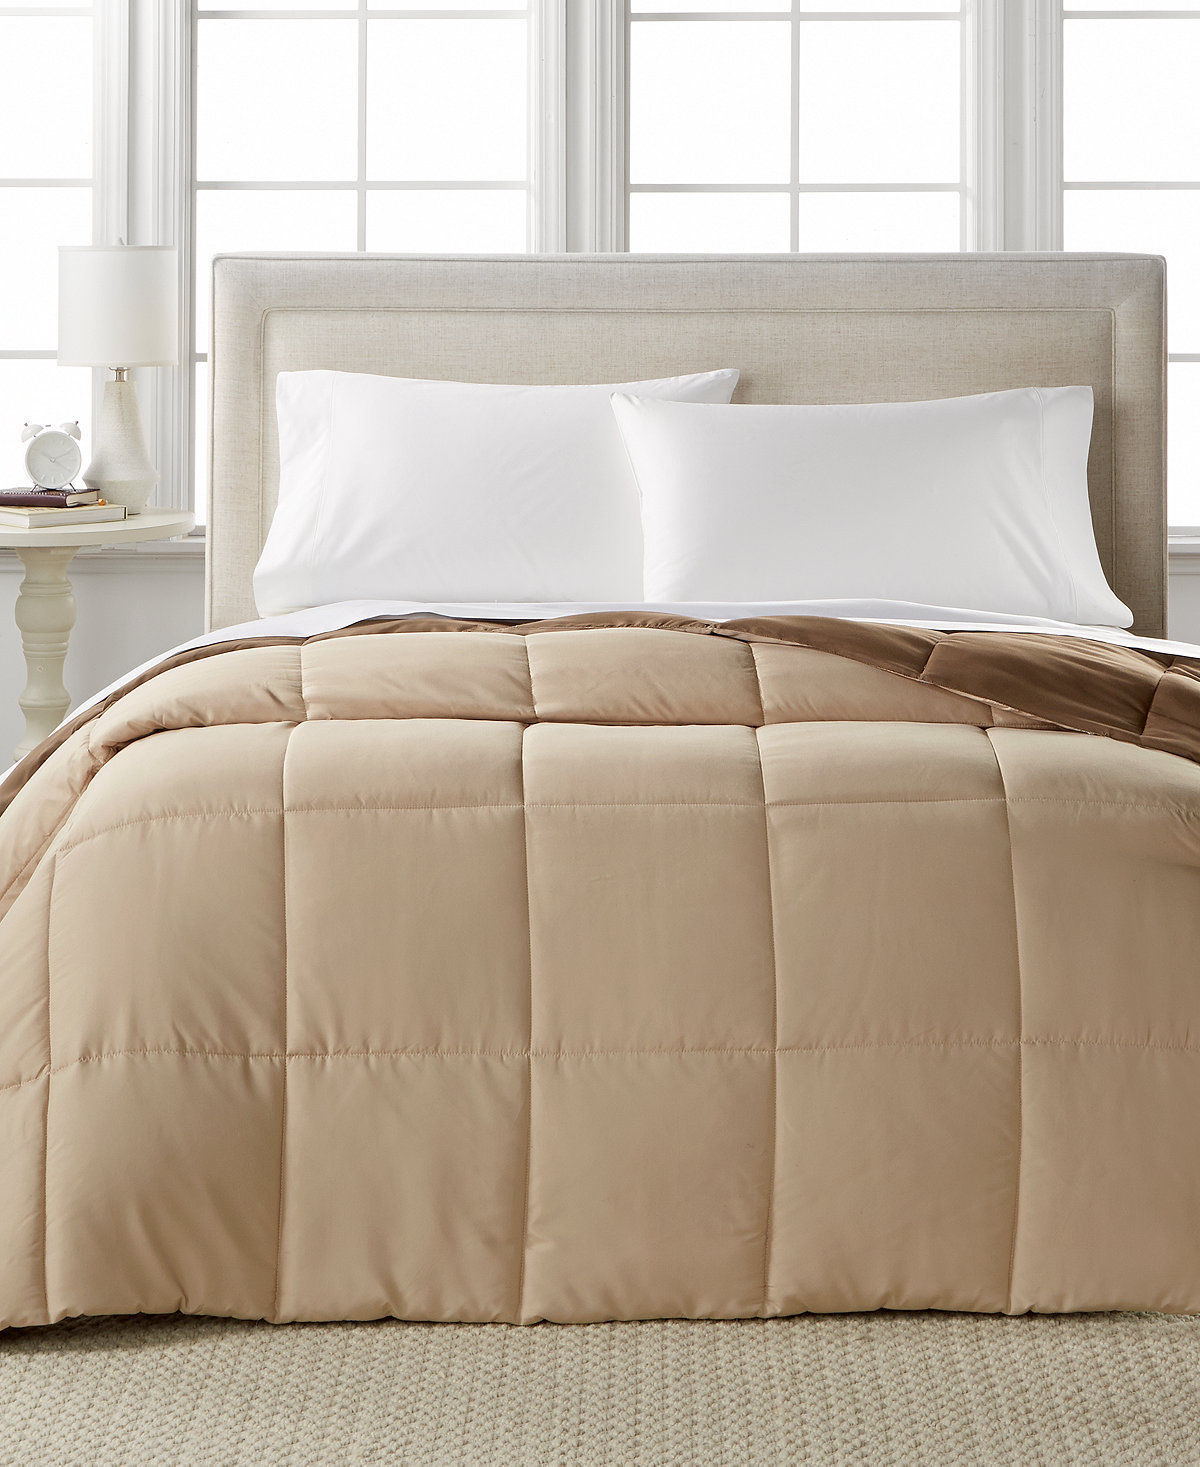 Home design taupe brown alternative down comforter king - Home design down alternative comforter ...